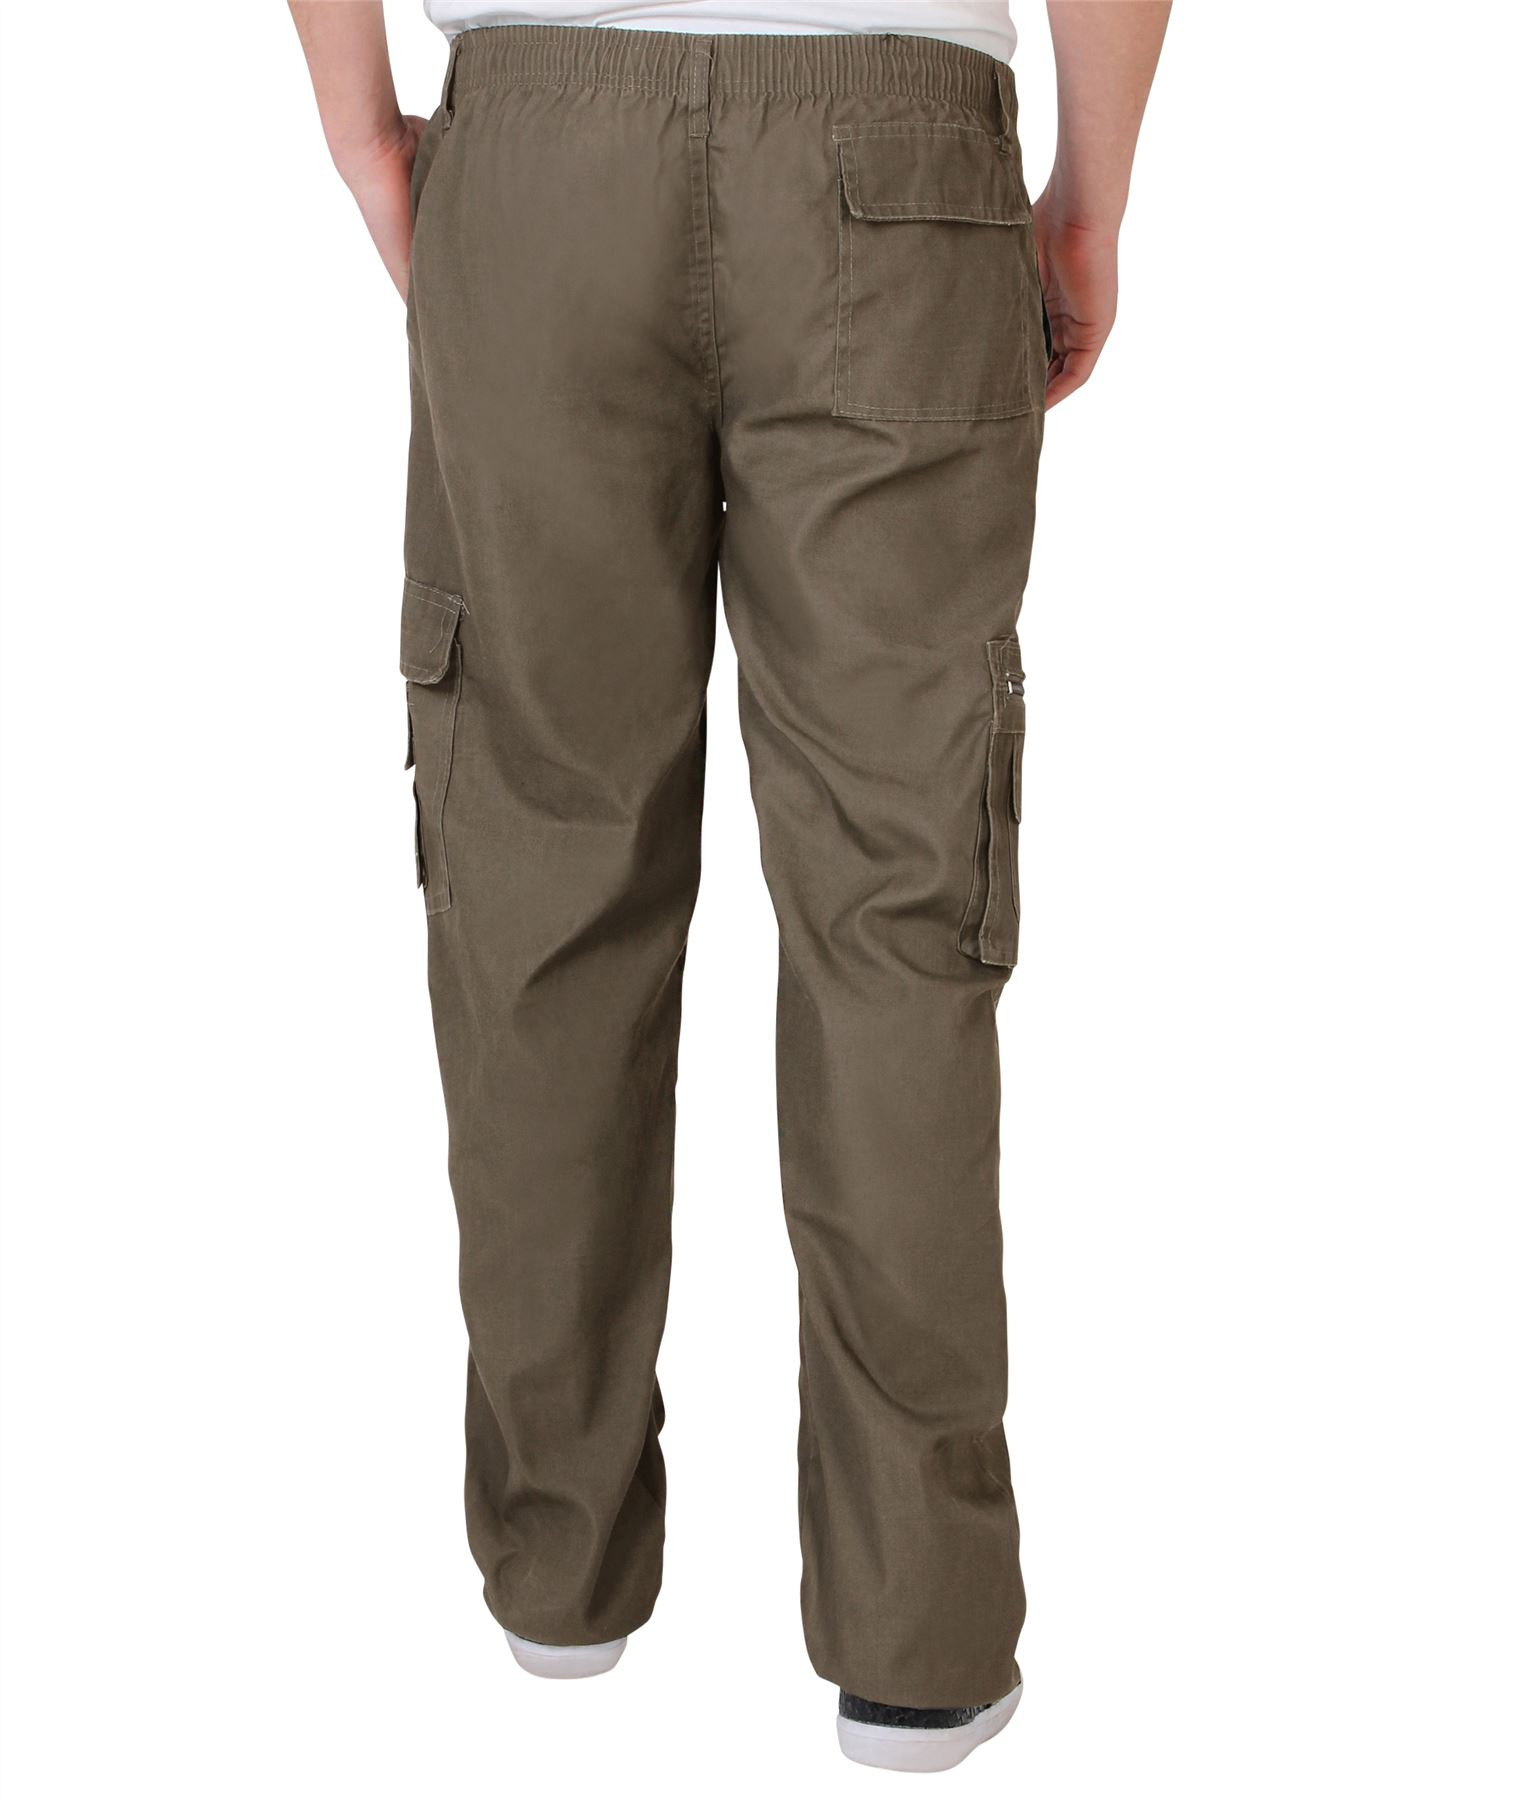 Mens-Army-Cargo-Trousers-Cotton-Combat-Pants-Military-Work-Chinos-Casual-Khakis thumbnail 34